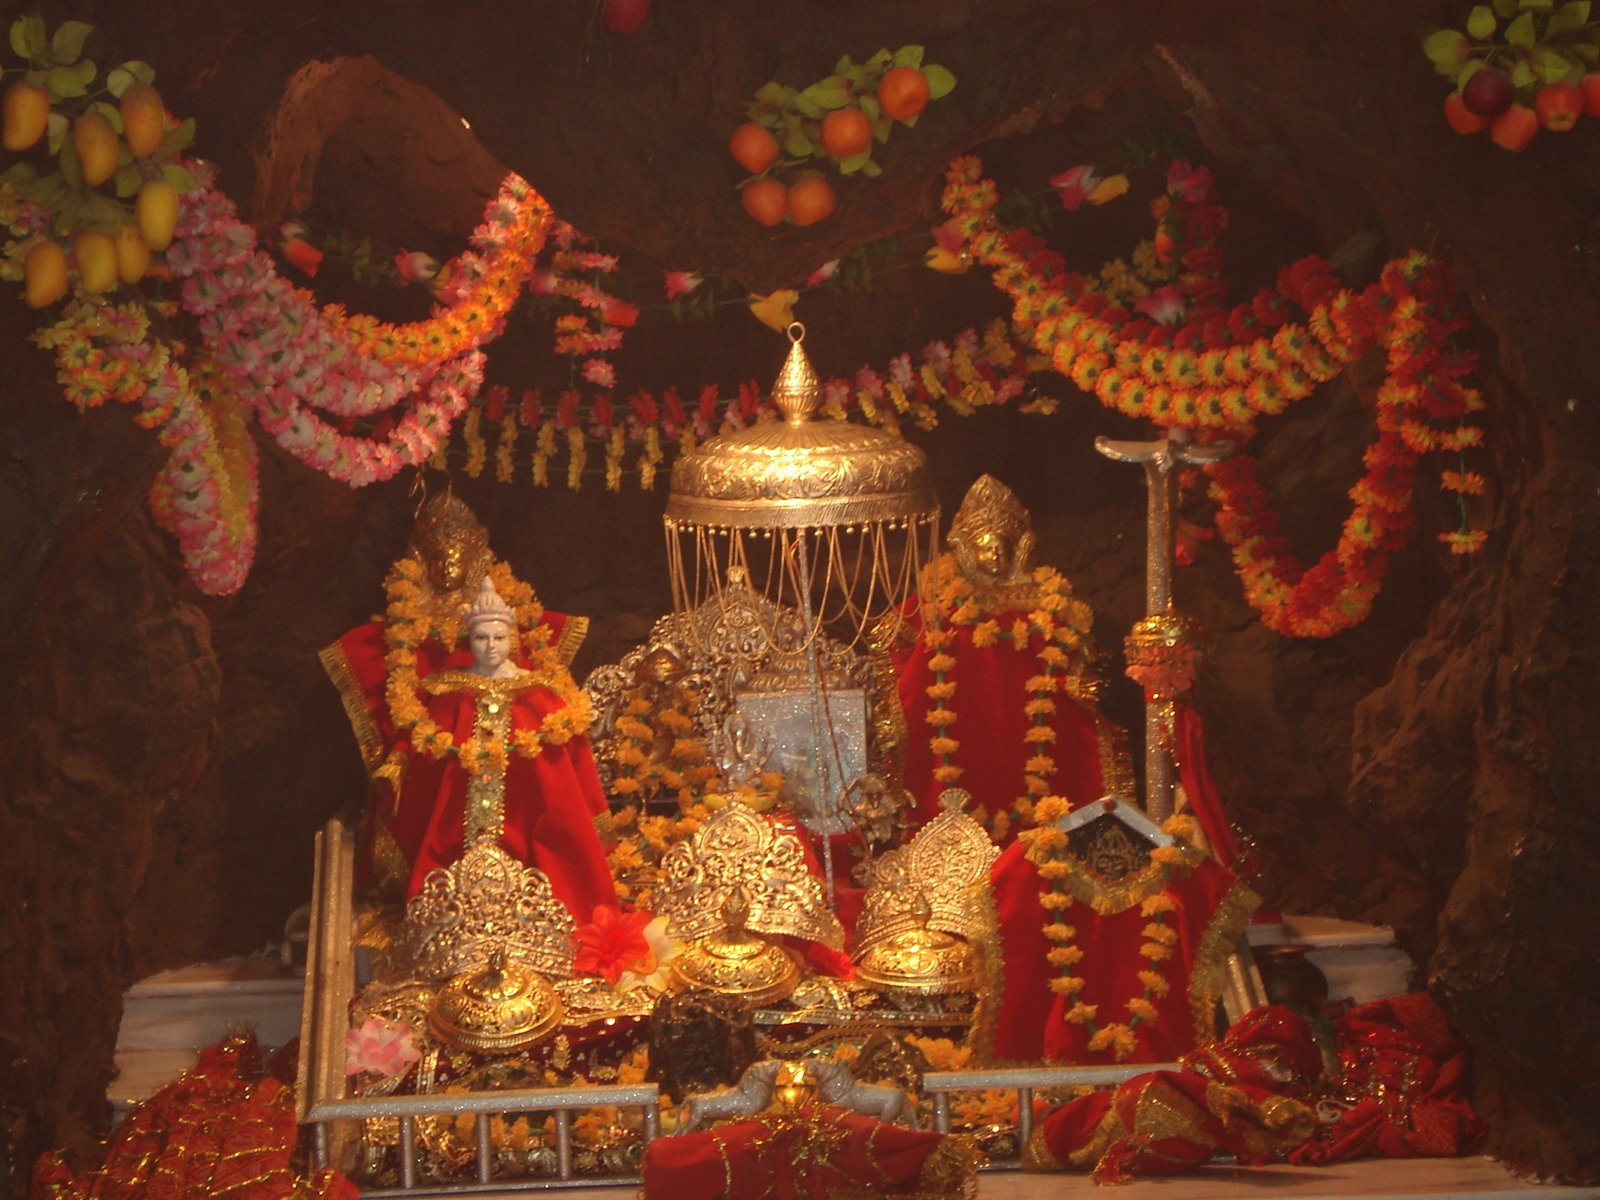 THOUSANDS OF PILGRIMS COMING IN VAISHNO DEVI TEMPLE